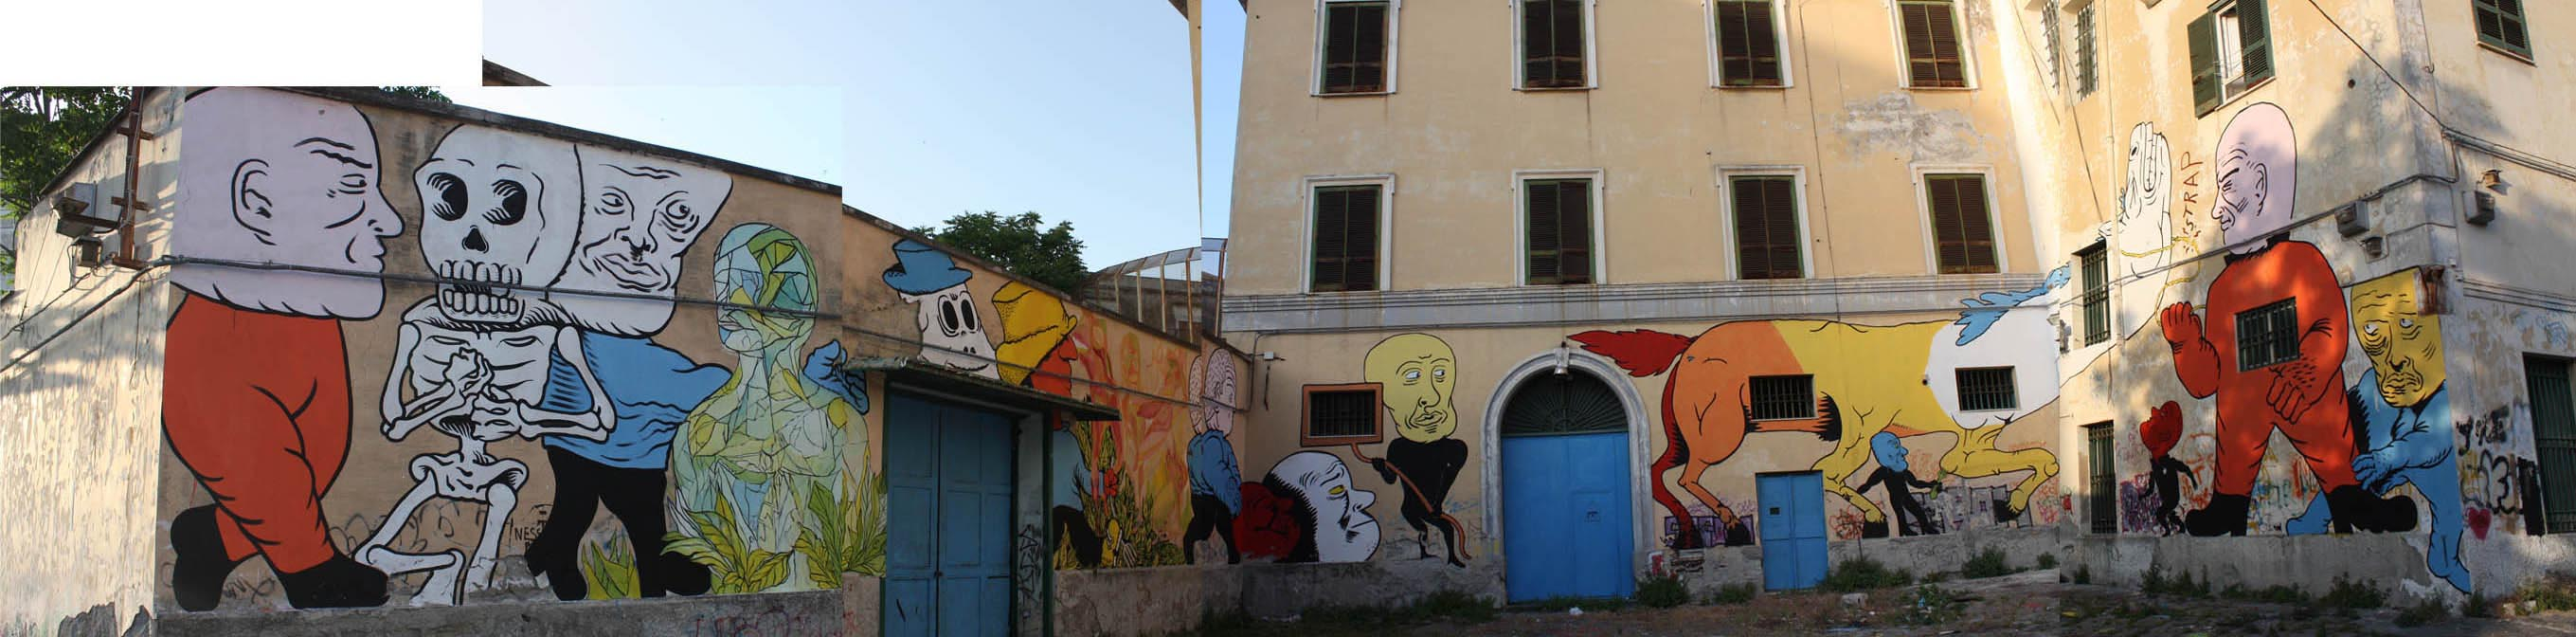 diego-miedo-arp-zolta-new-mural-in-naples (9)